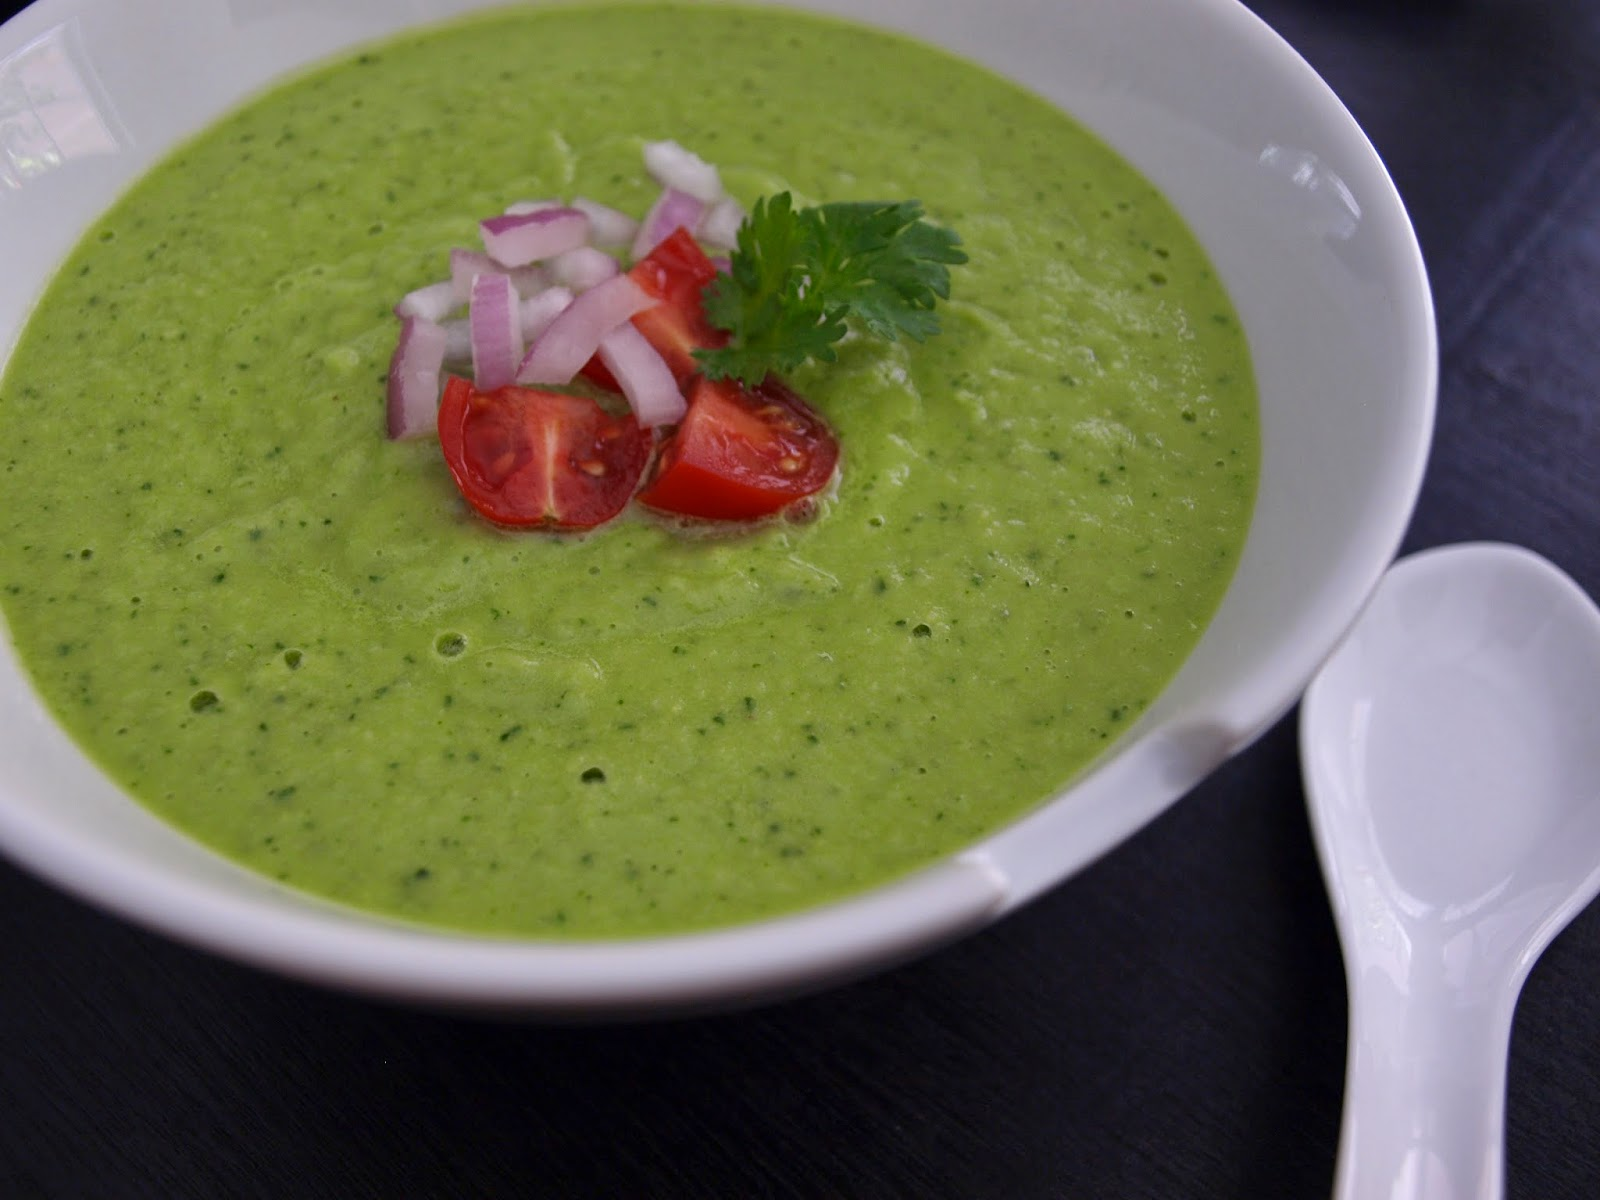 THE SIMPLE VEGANISTA: Avocado & Cucumber Soup